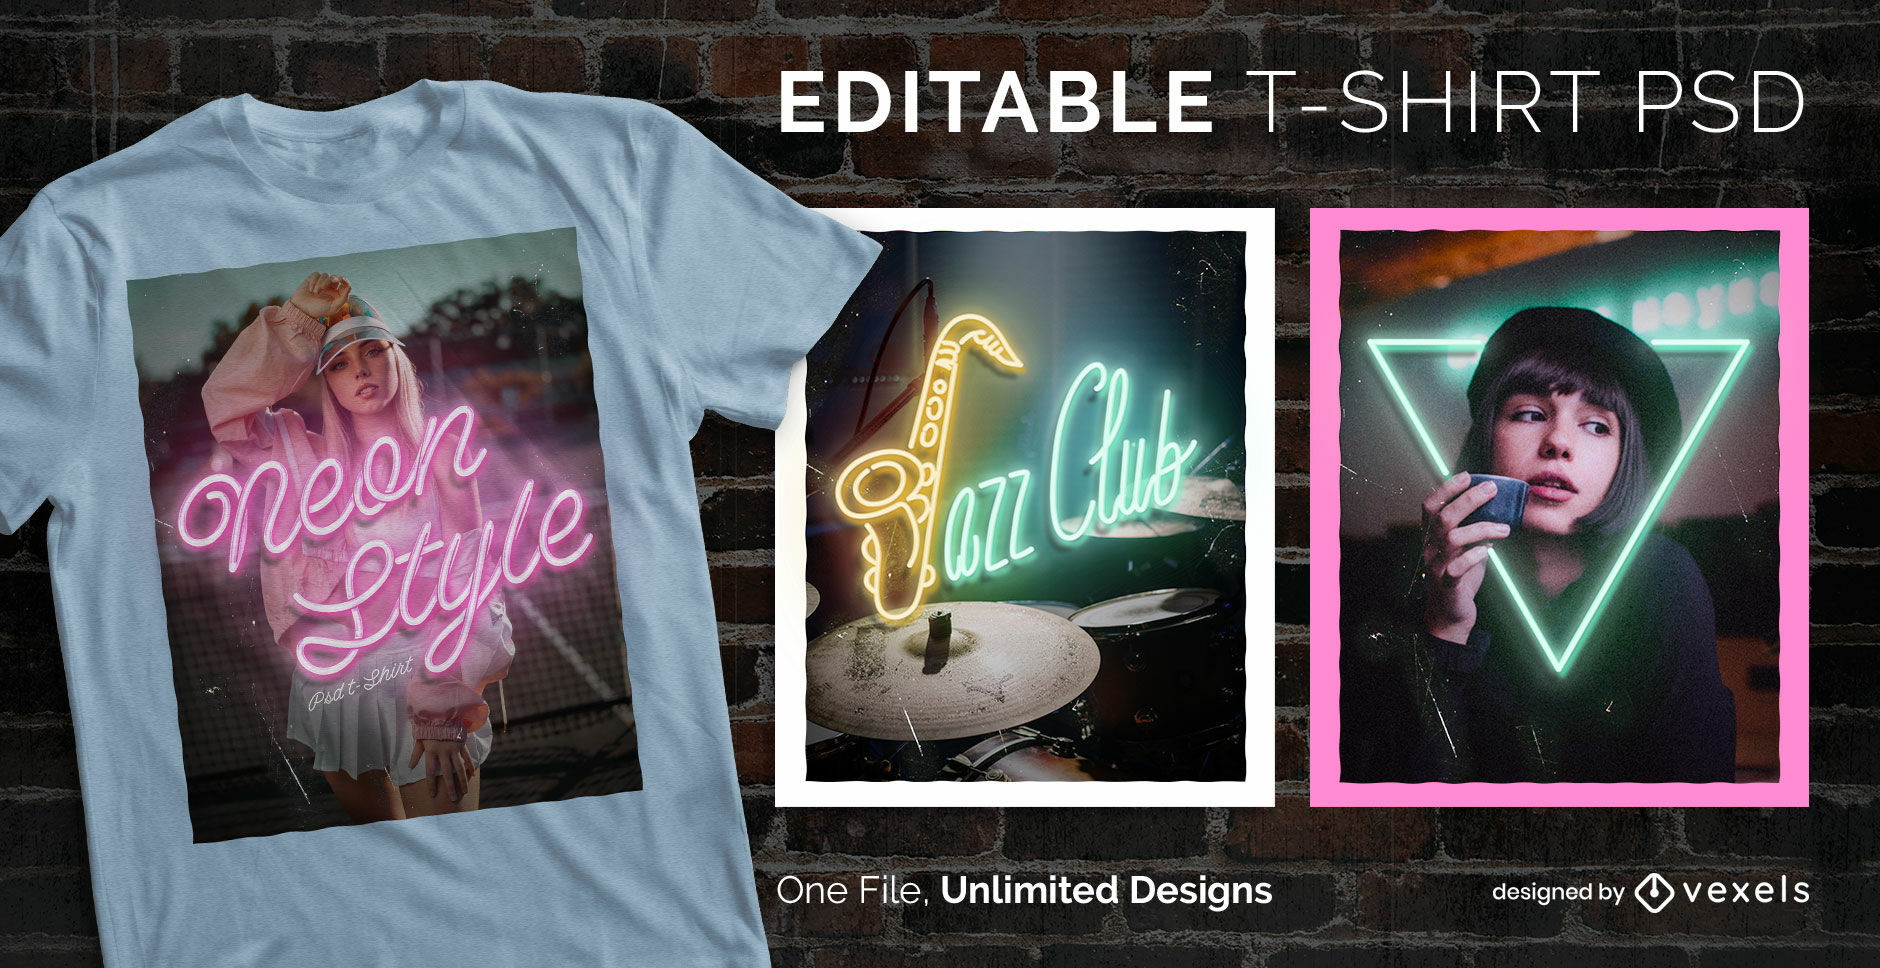 Neon style photographic scalable t-shirt psd